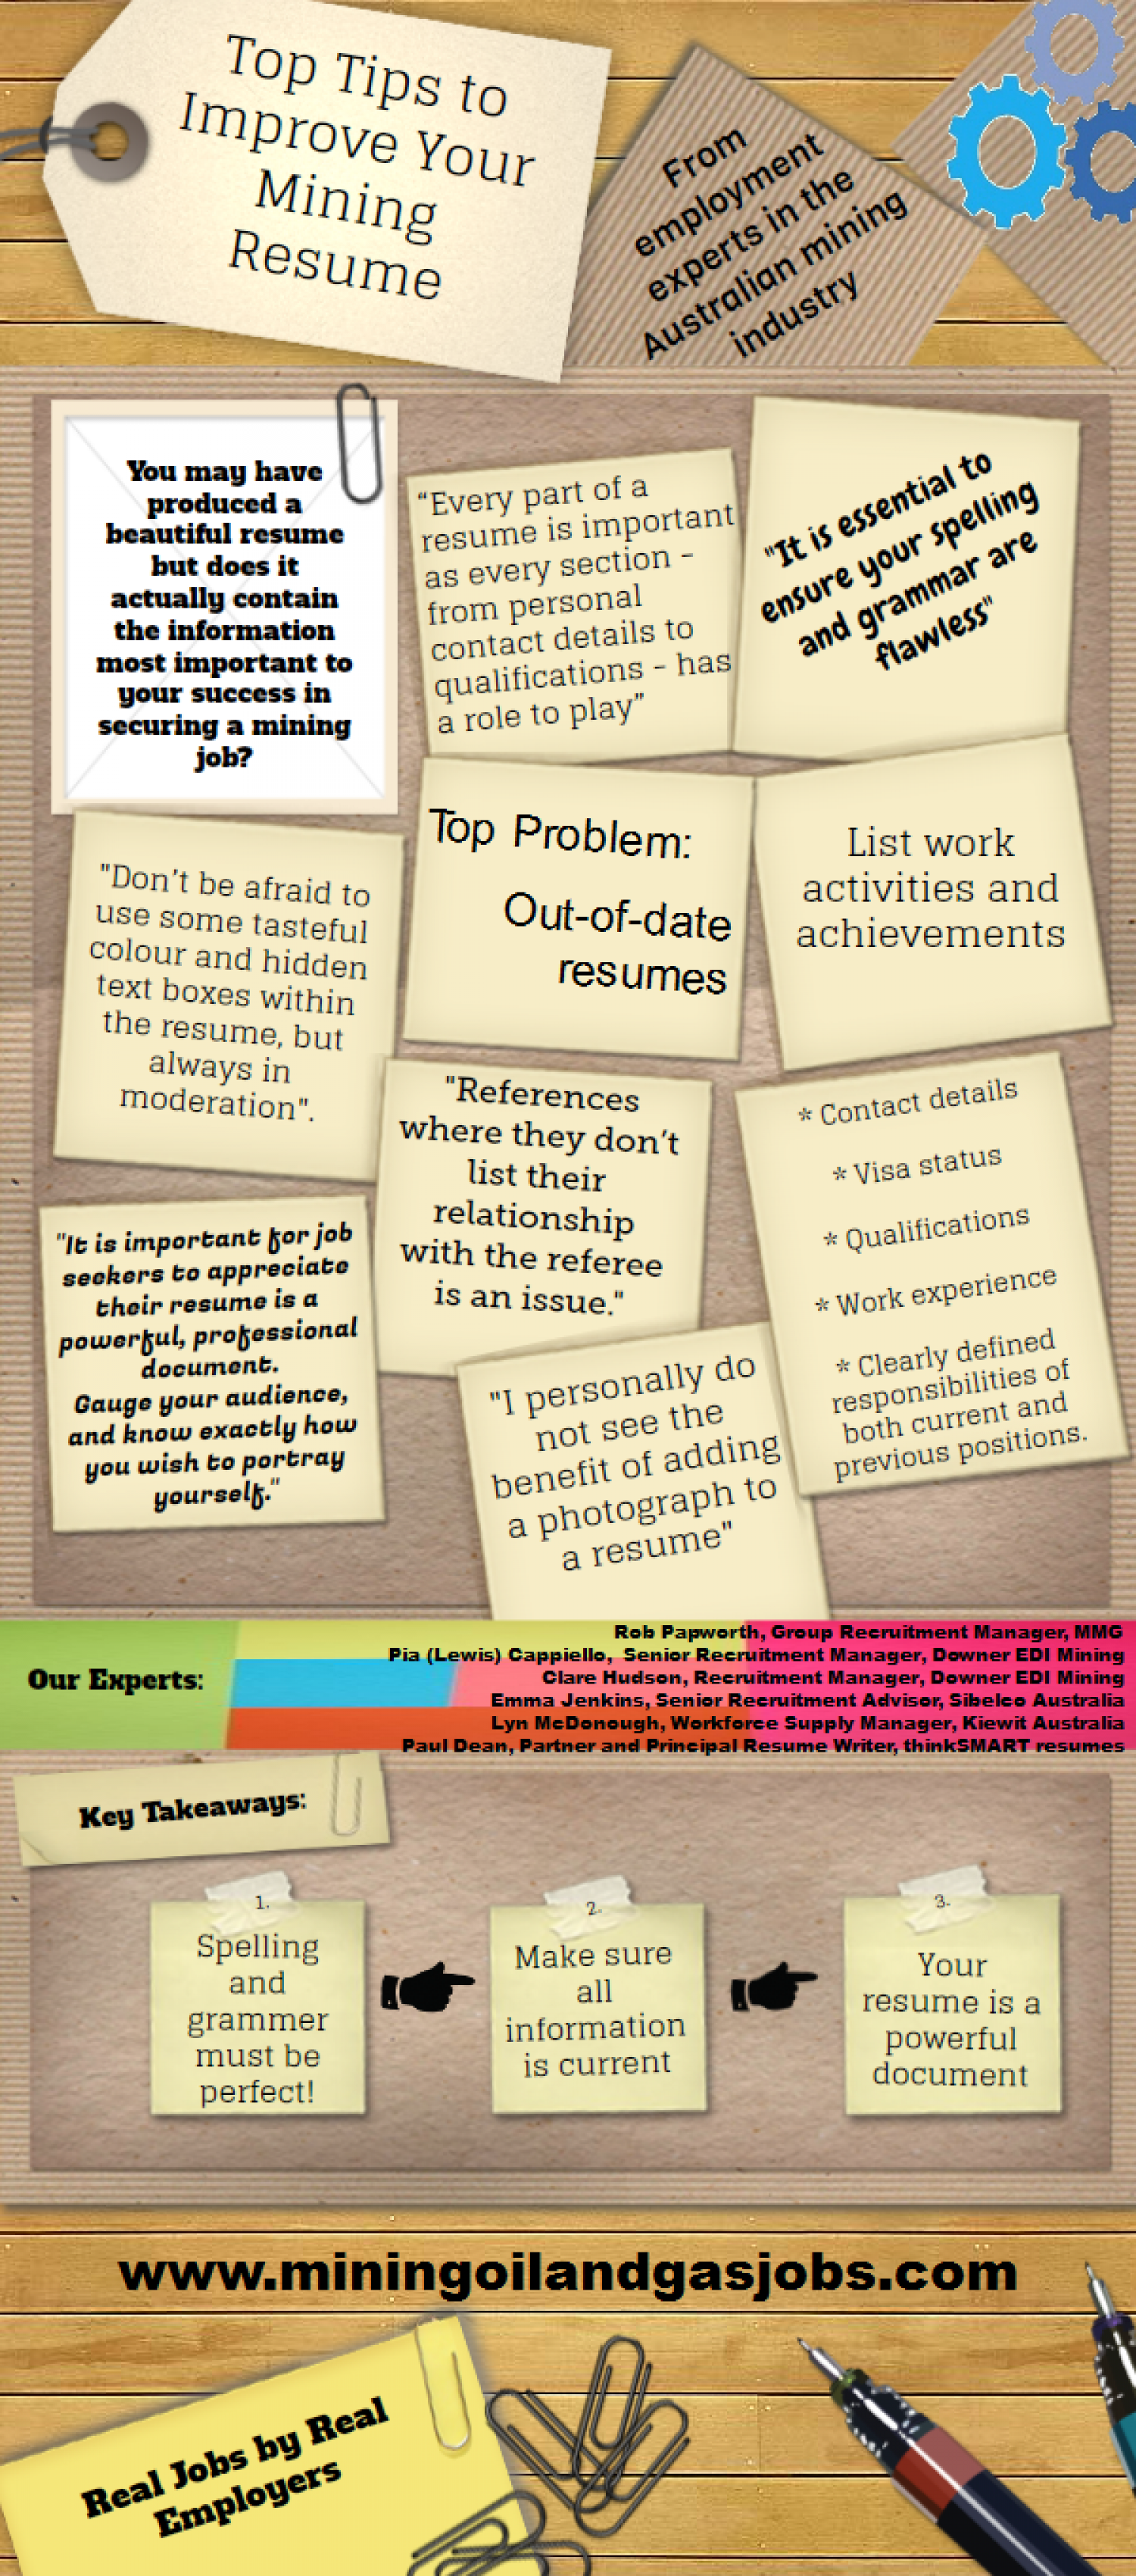 Top Tips to Improve Your Mining Resume Infographic